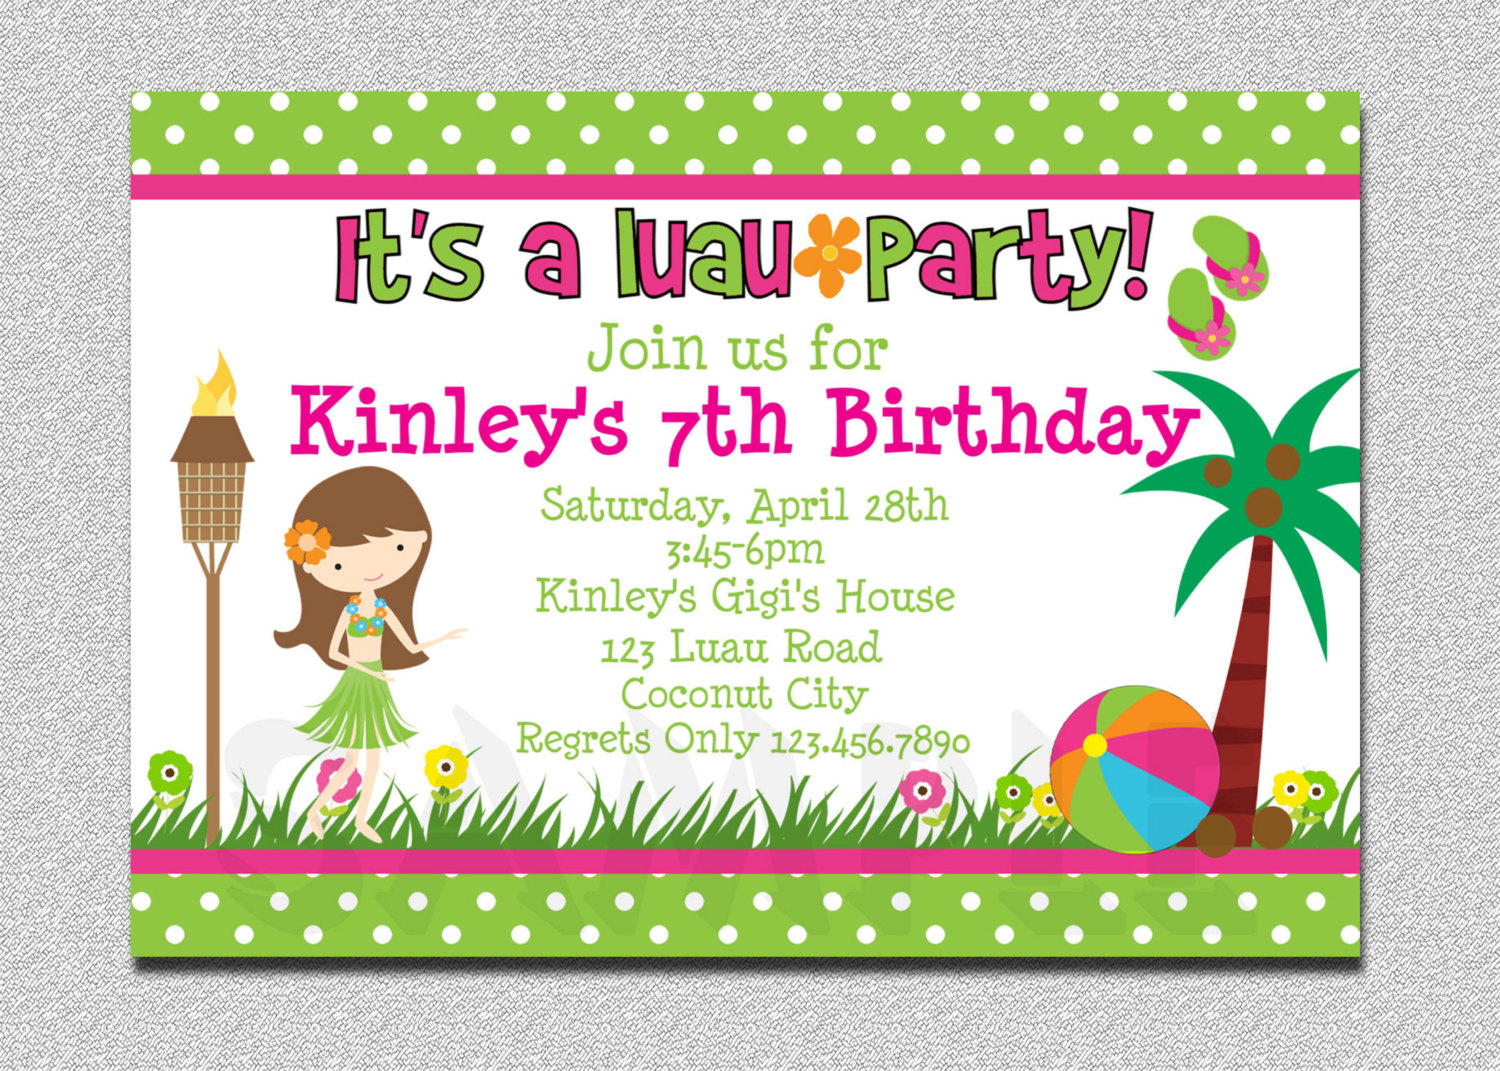 20 luau birthday invitations designs birthday party invitations luau birthday invitations stopboris Image collections